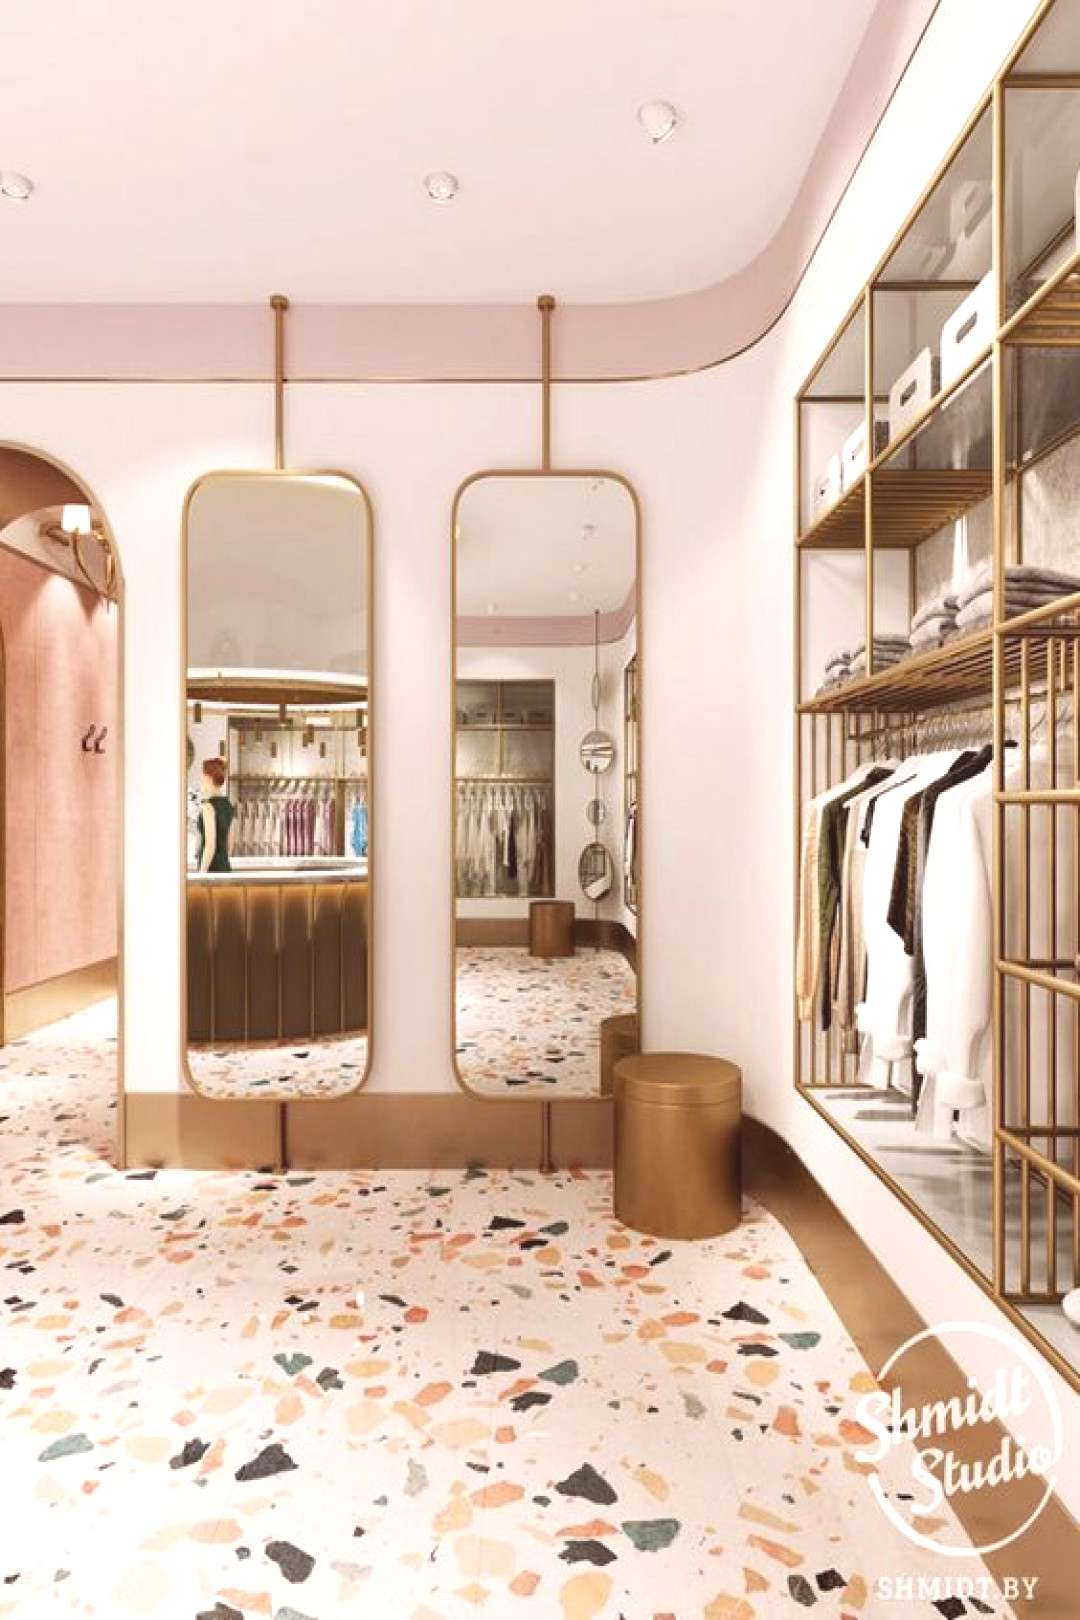 Luxury Boutiques Design Projects - Decor Inspirations Be inspired by some eye-catching boutiques. T